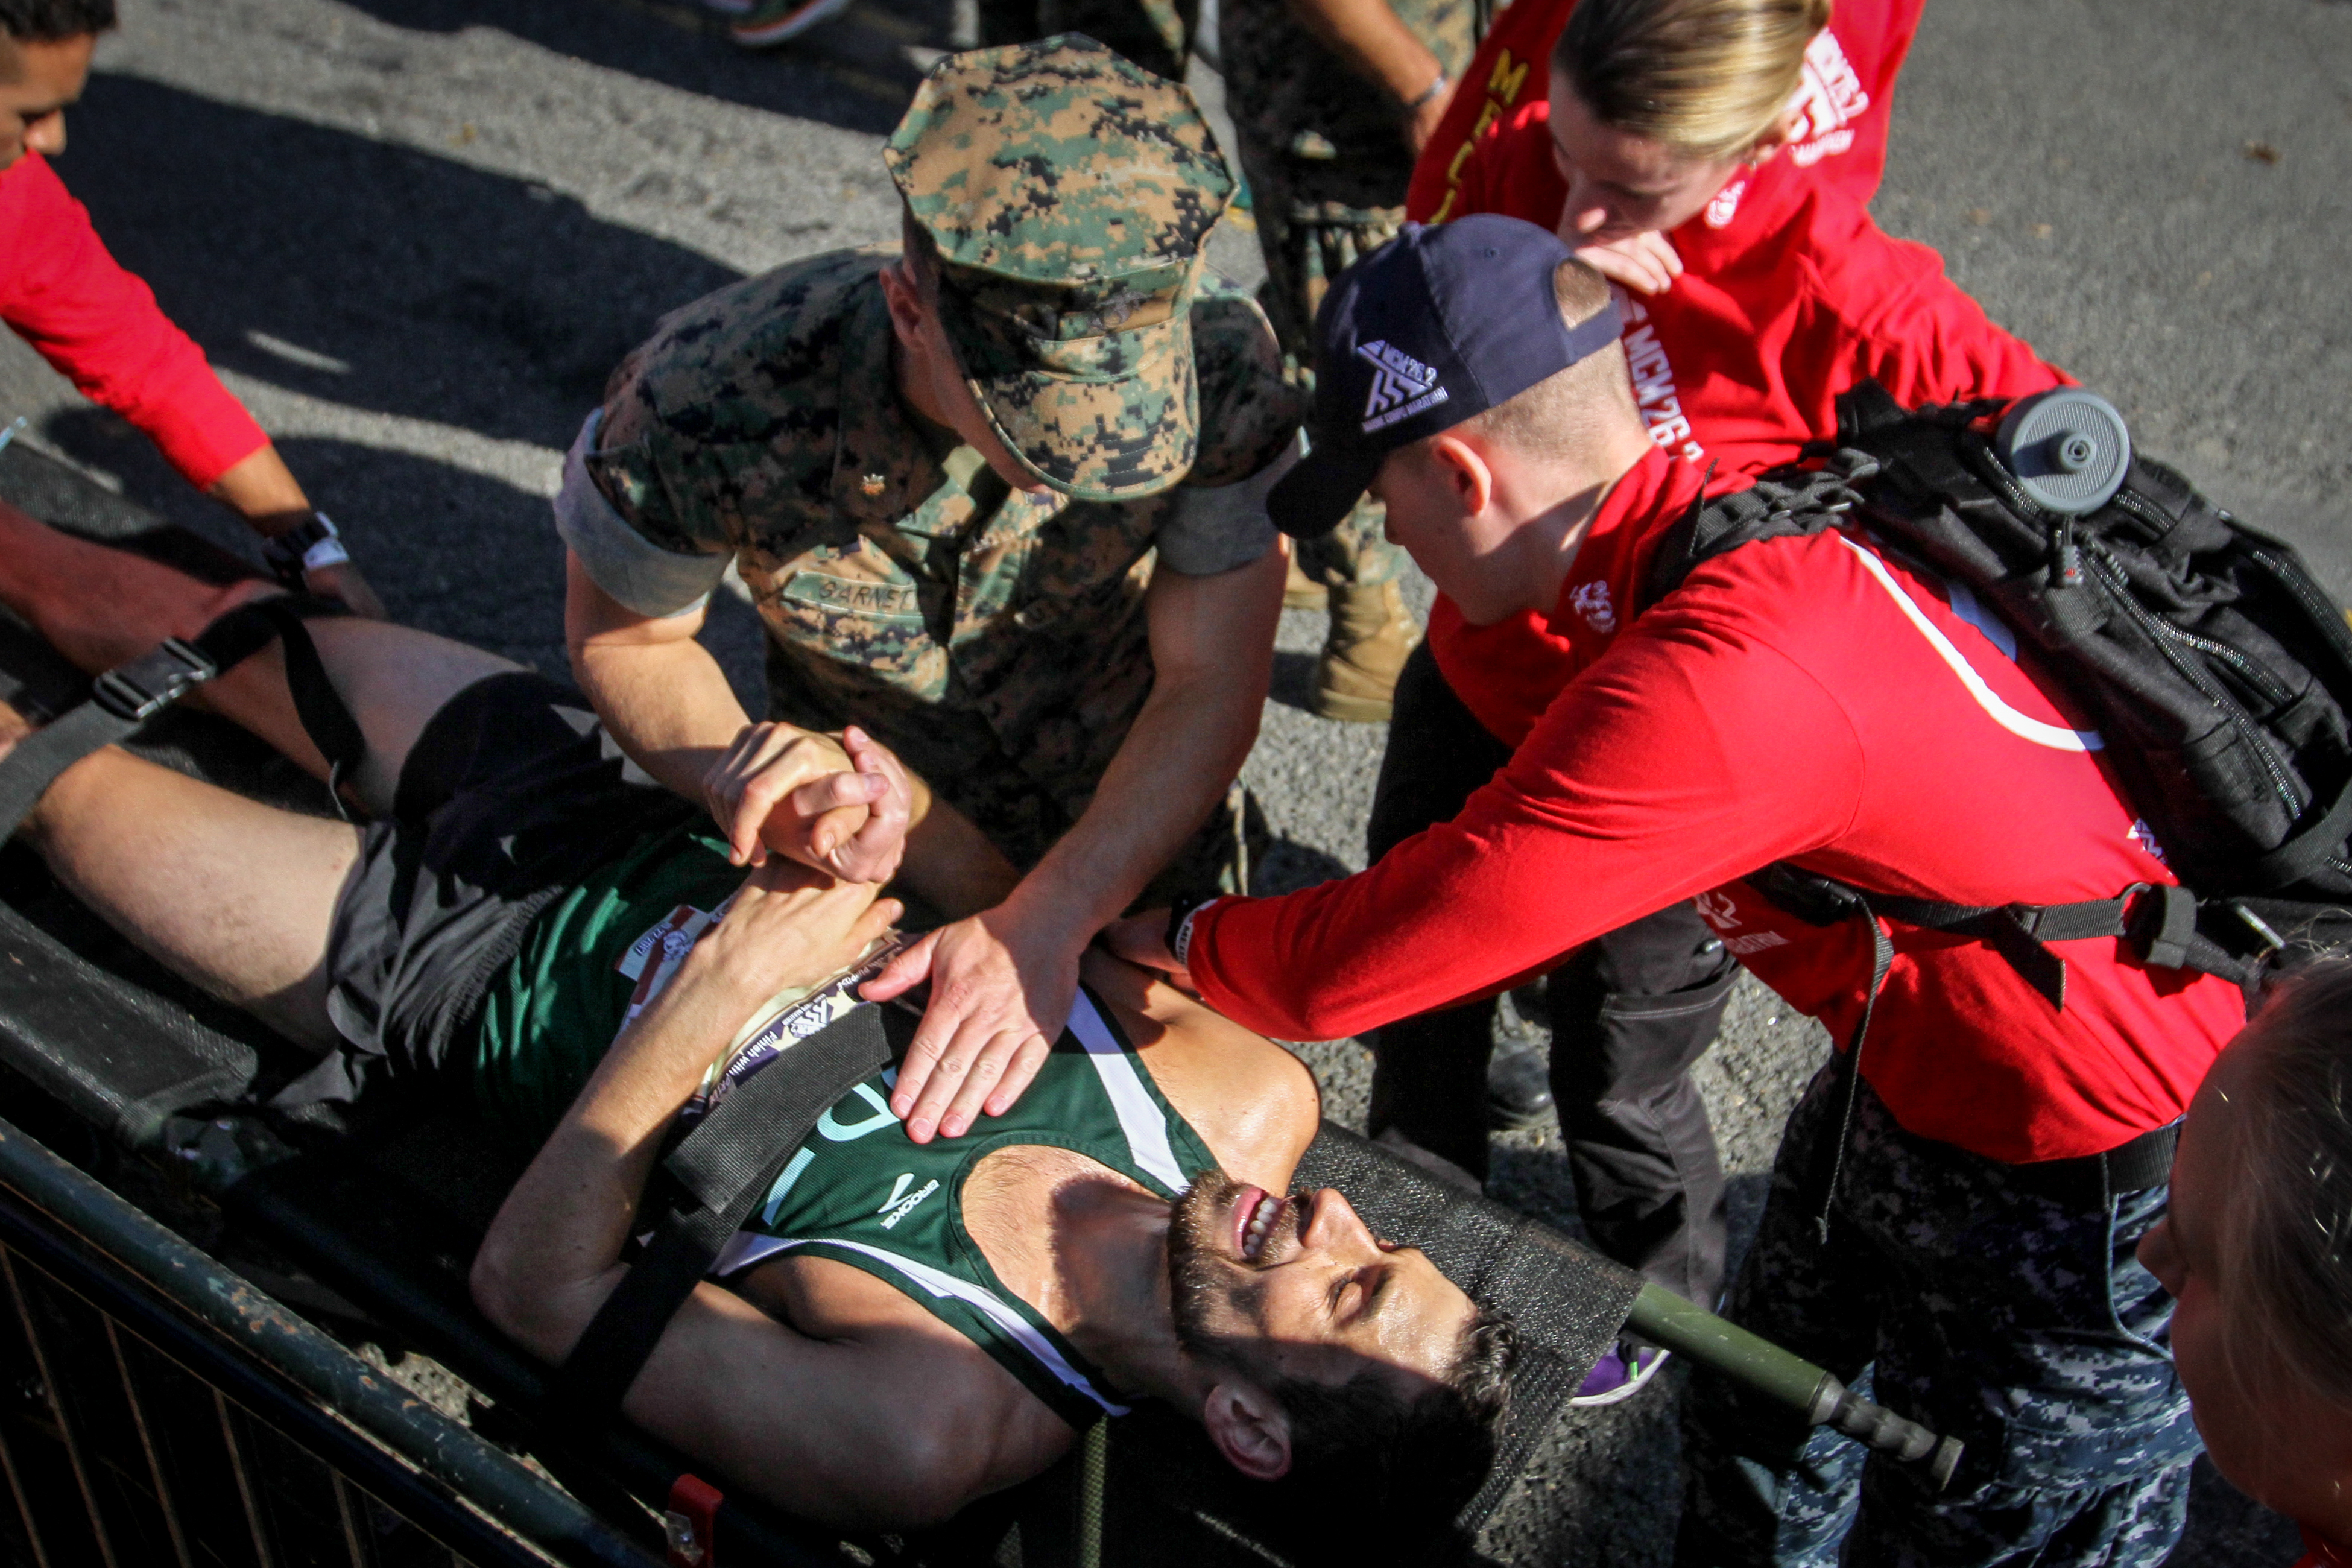 November, 2017. A runner is comforted after collapsing near the finish line of the Marine Corps Marathon.{&amp;nbsp;} (Amanda Andrade-Rhoades/DC Refined)<p></p>